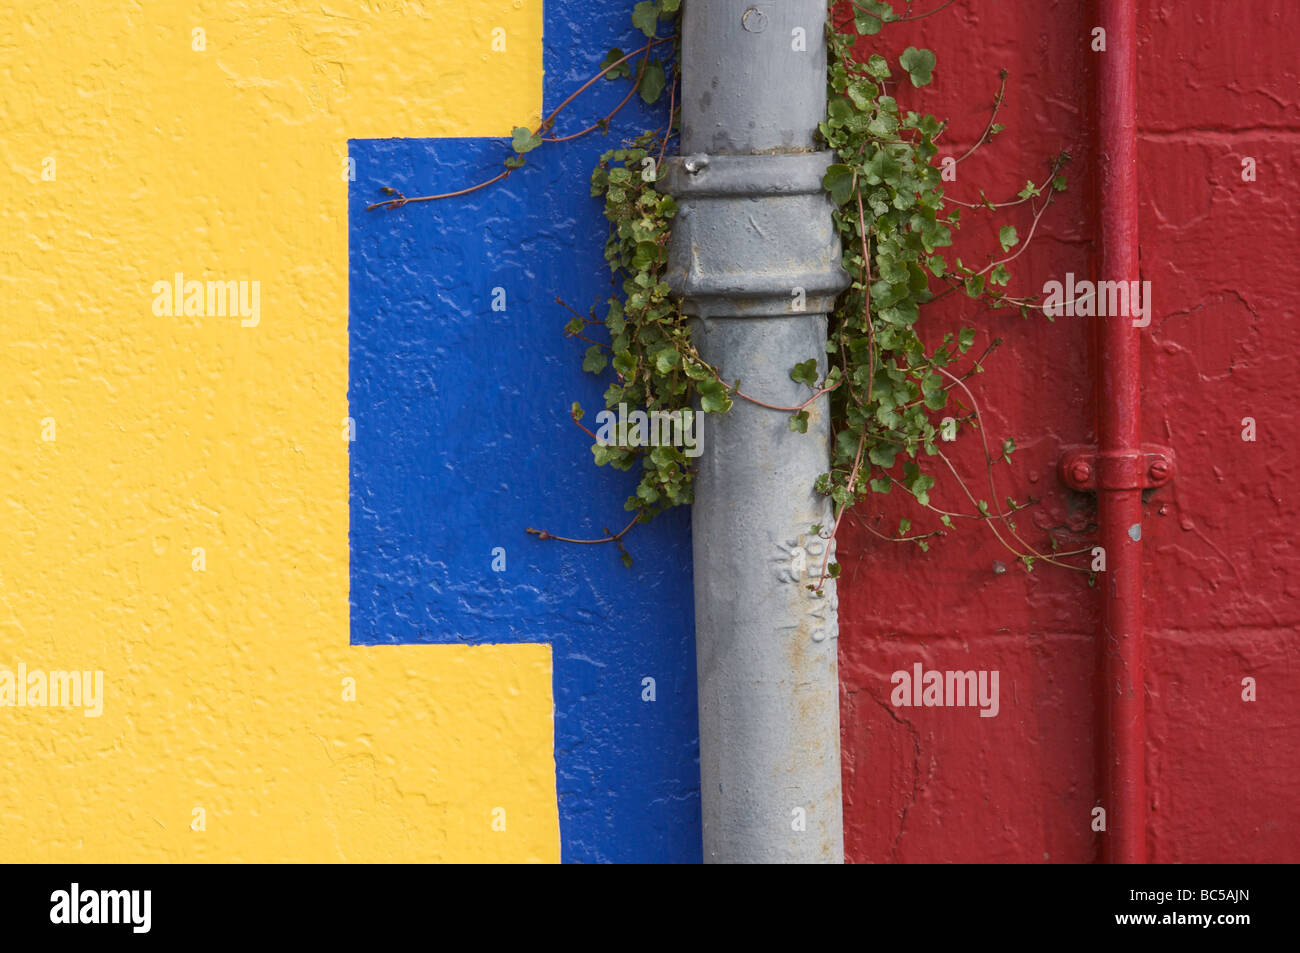 Drainpipe and painted wall, Tobermory, Mull, Scotland - Stock Image